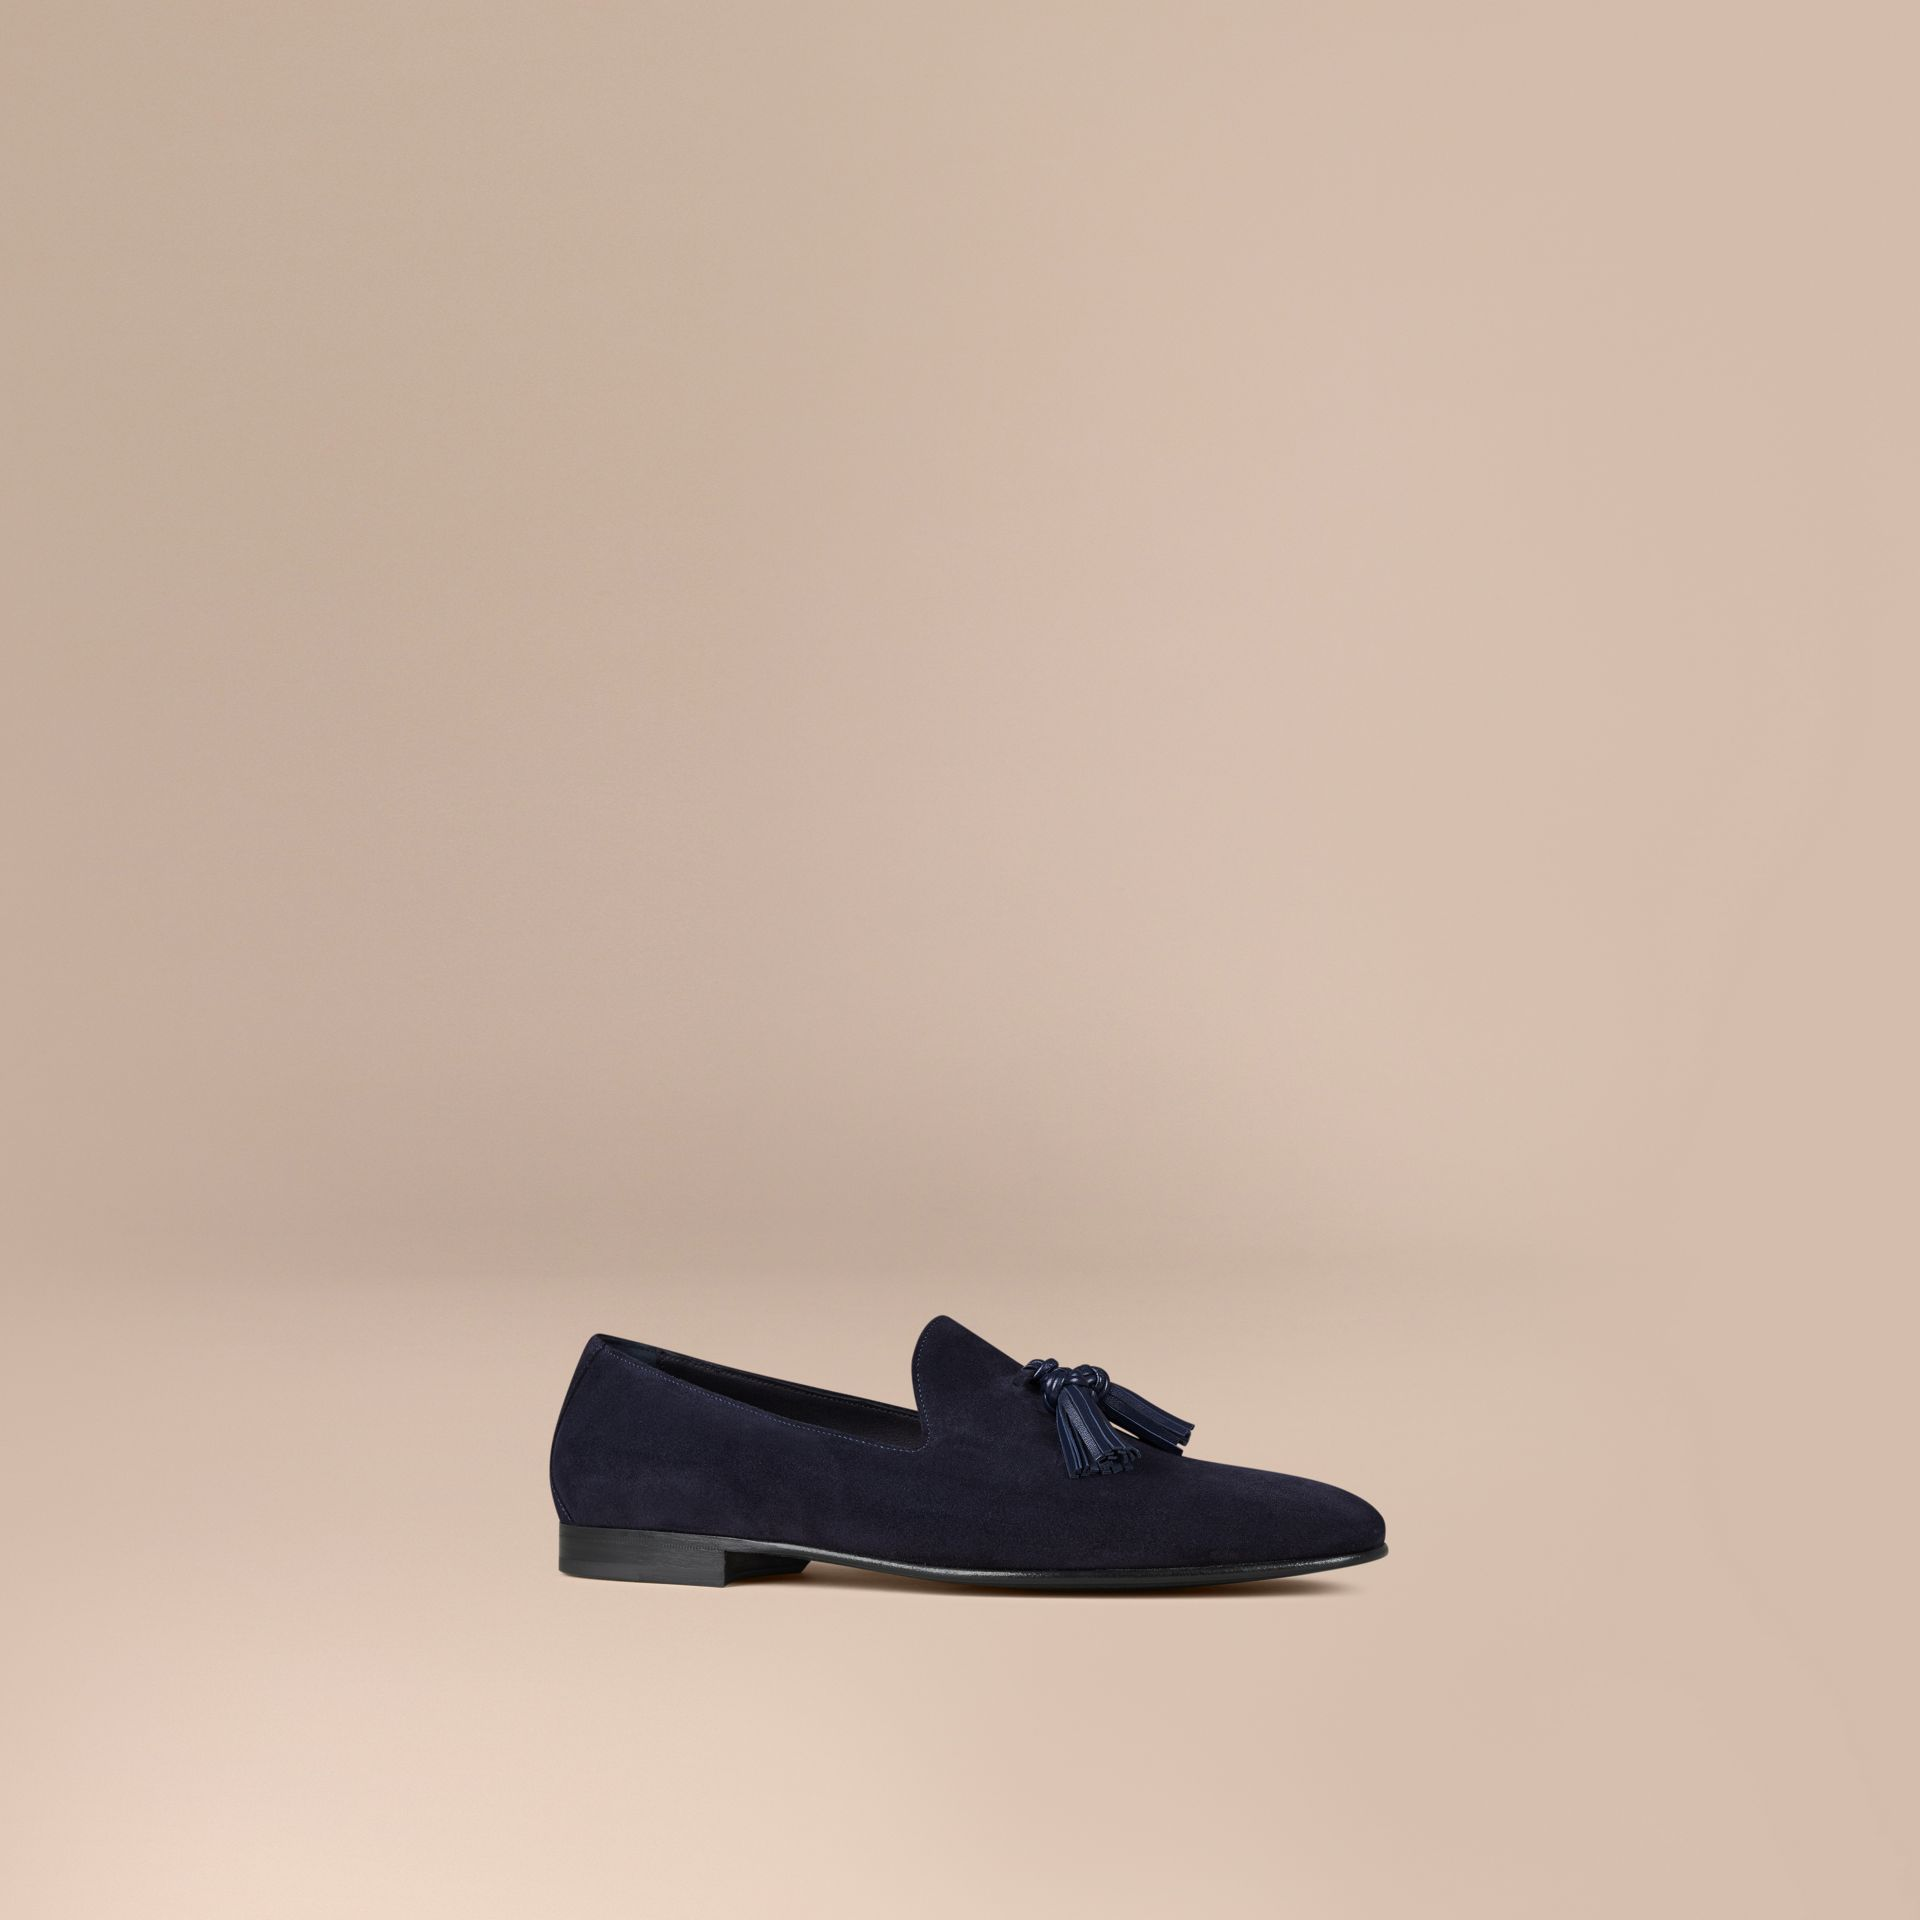 Midnight blue/navy Whole-cut Suede Tassel Loafers Midnight Blue/navy - gallery image 1